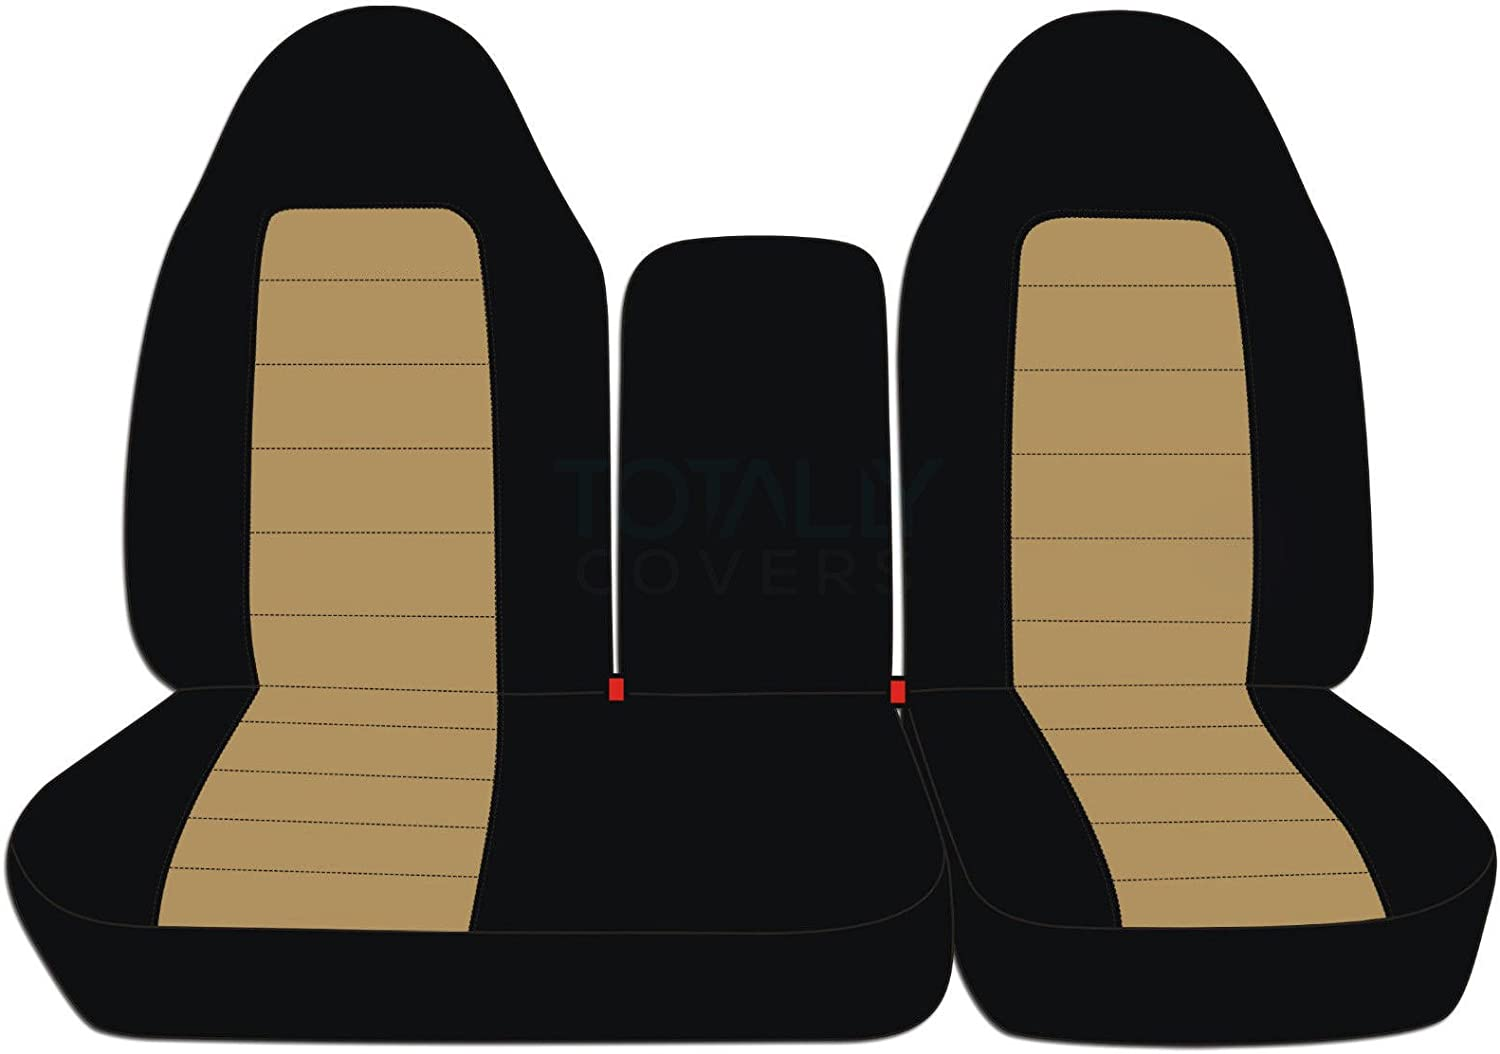 : Black /& Gray 1998 1999 2000 2001 2002 F-Series Extended F150 Back Rear 40//60 Split Bench Totally Covers Fits 1997-2003 Ford F-150 Super Cab Two-Tone Truck Seat Covers 21 Colors